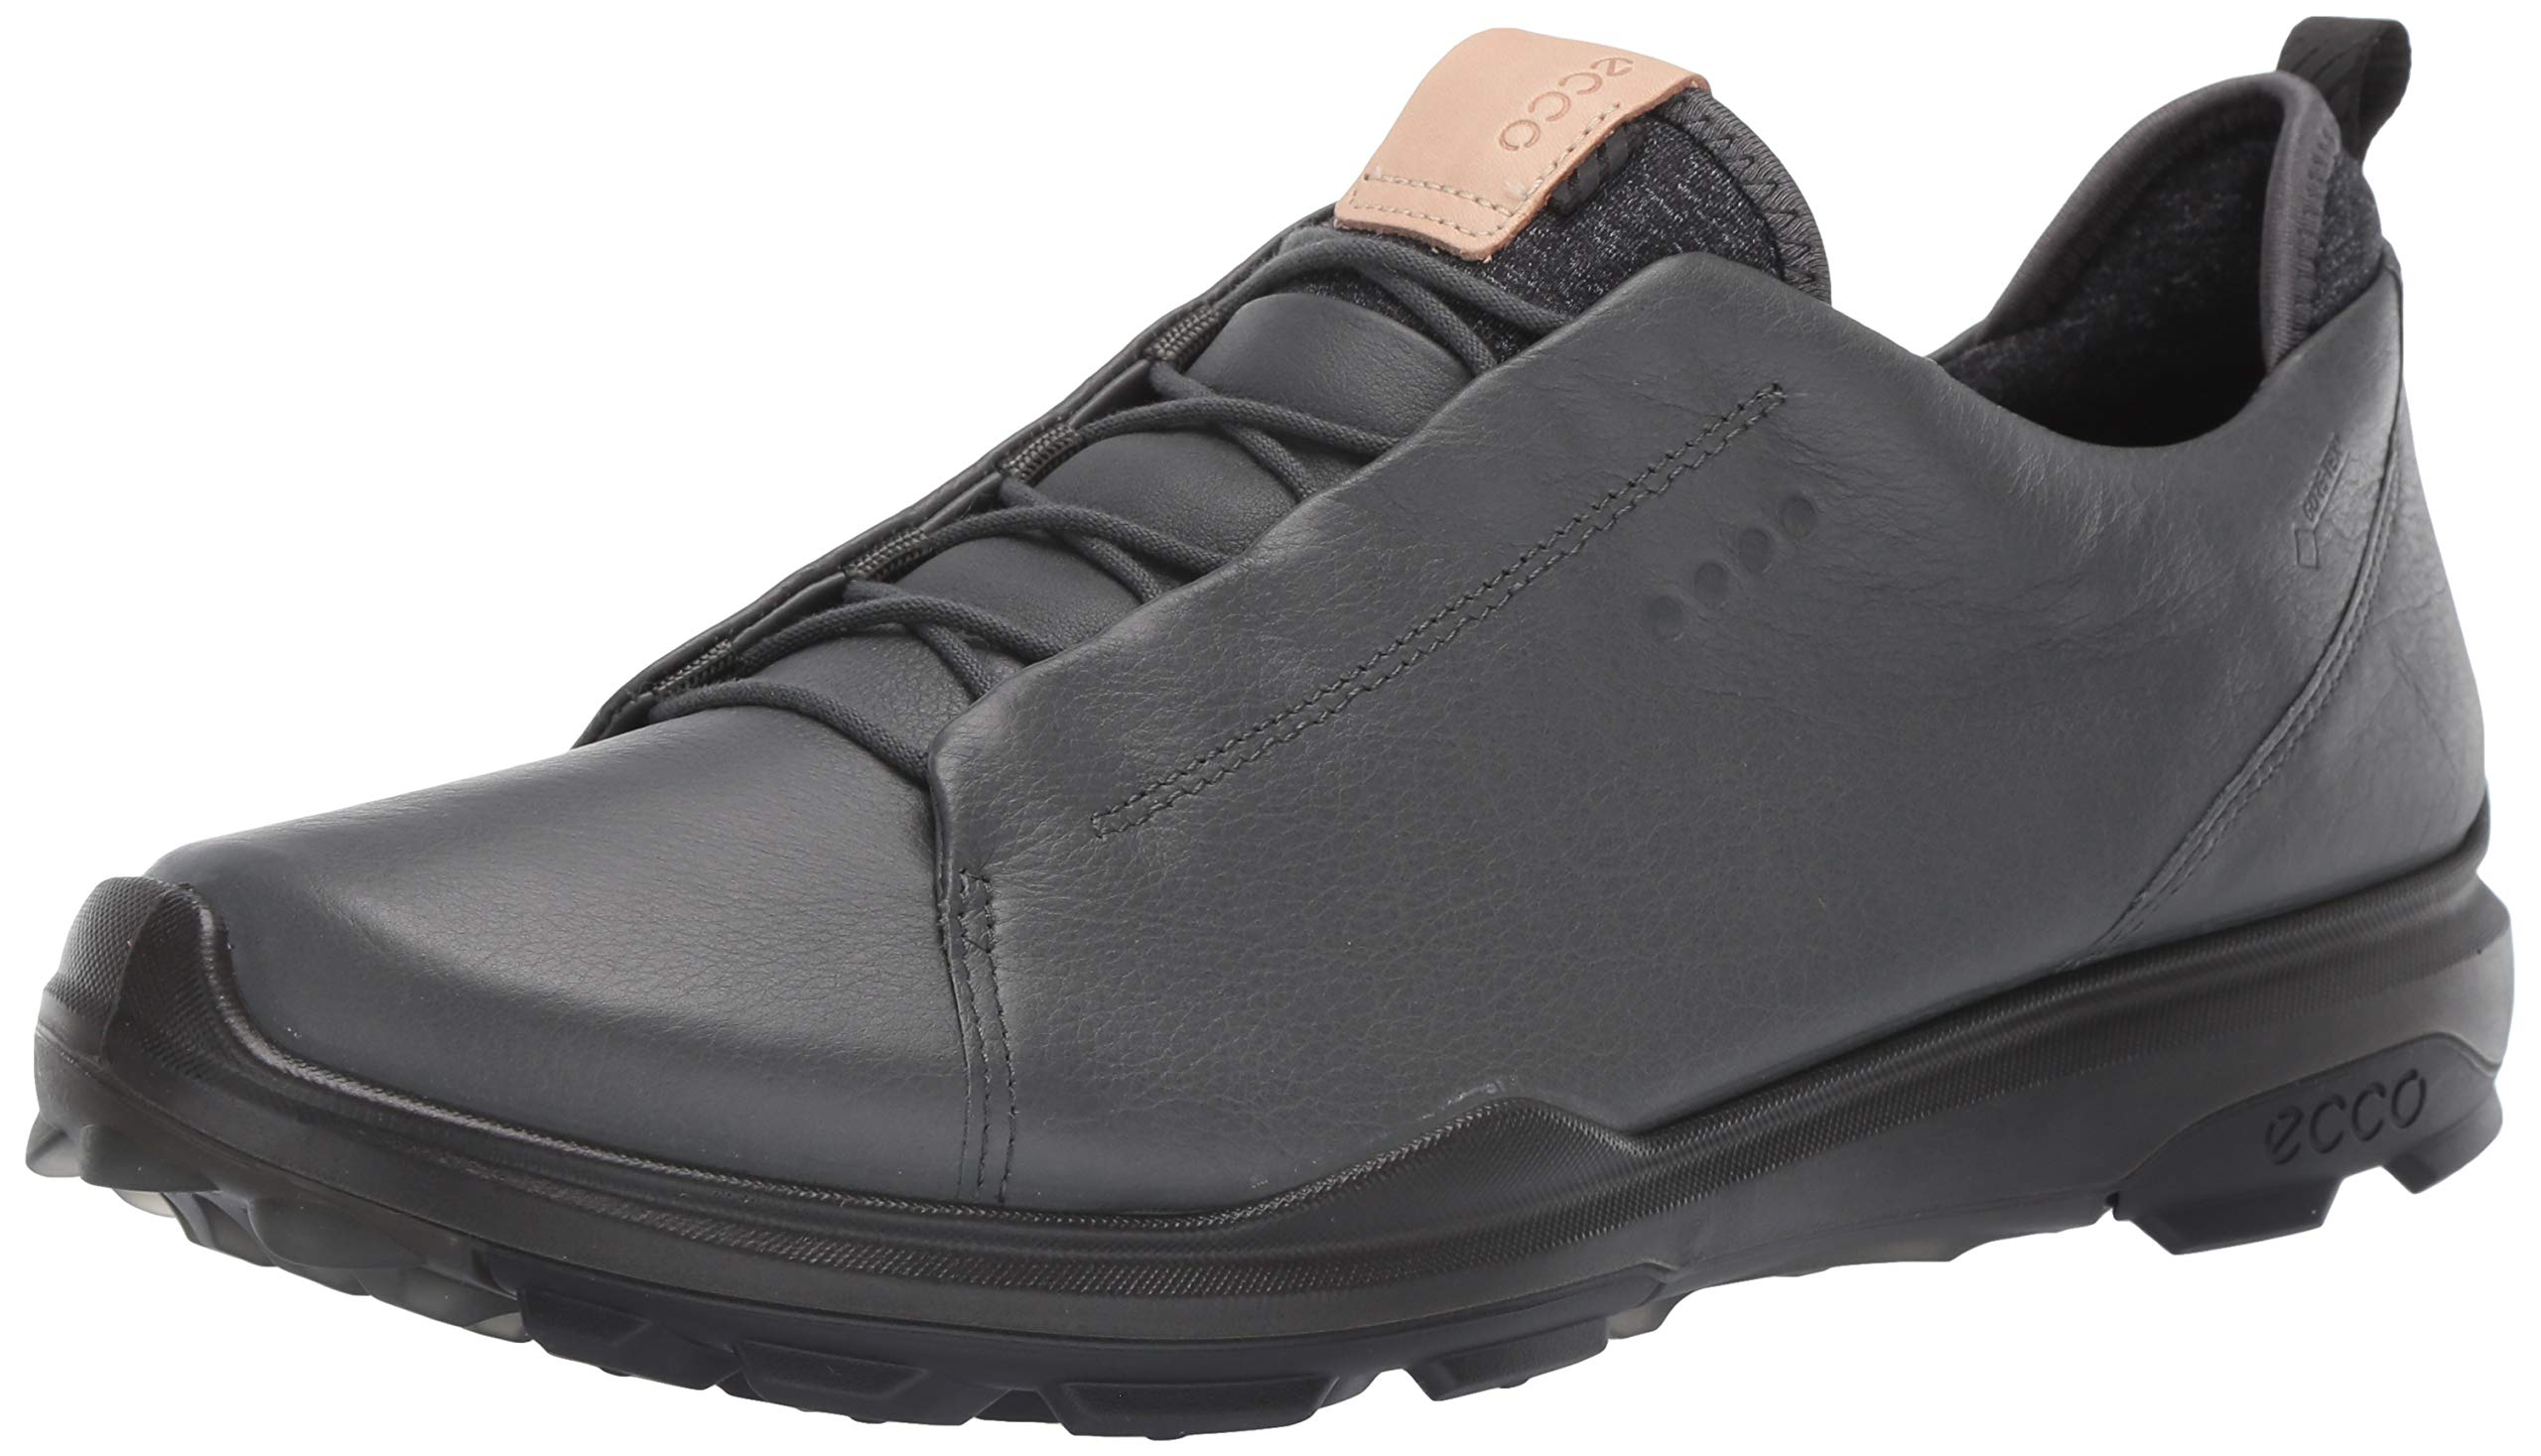 ECCO Men's Biom Hybrid 3 Gore-Tex Golf Shoe, Dark Shadow Open lace, 6 M US by ECCO